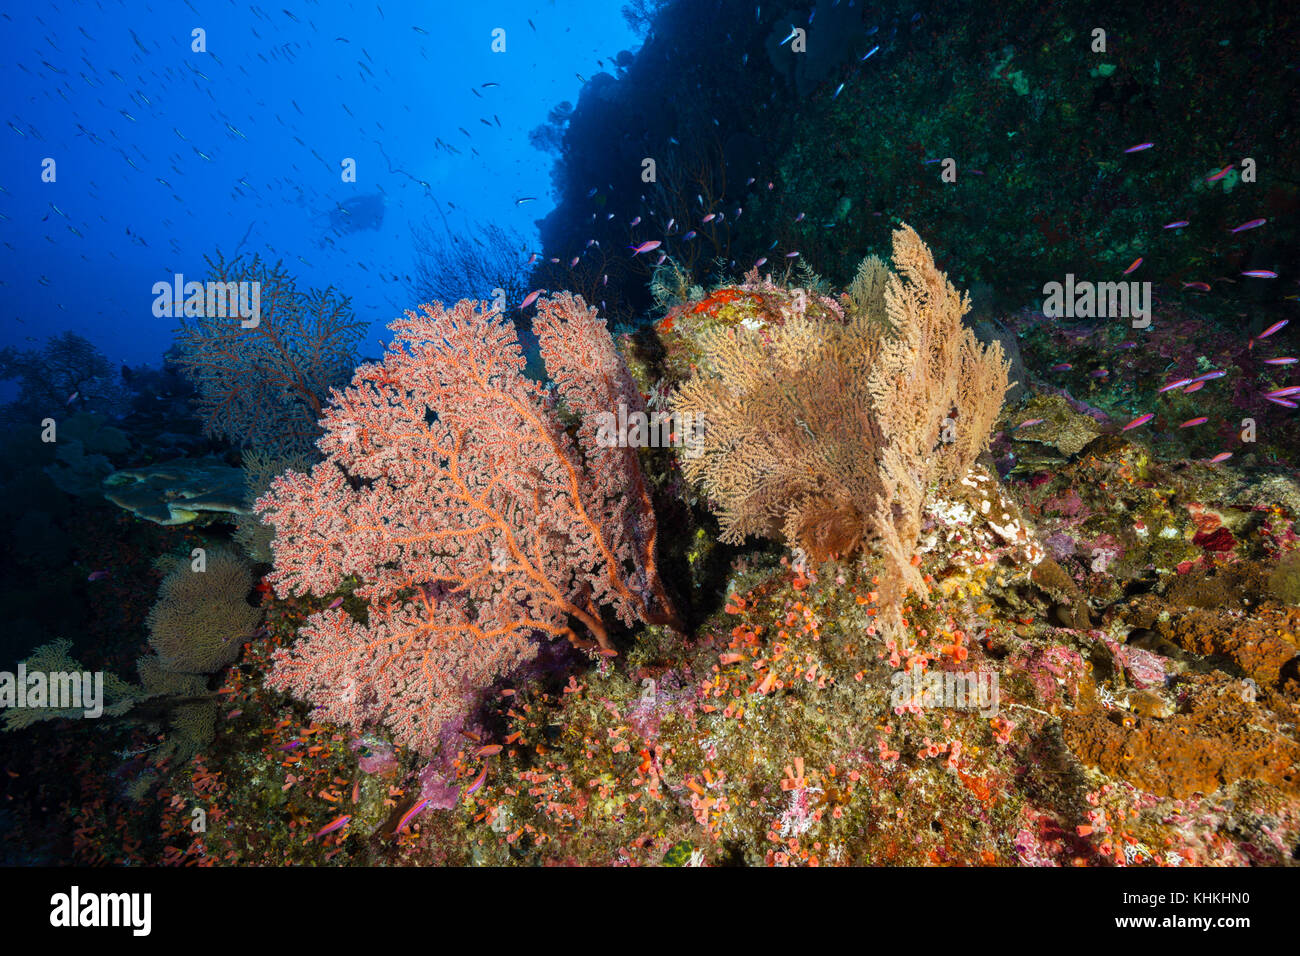 Coral Reef of Sea Fans, Gorgonaria, Christmas Island, Australia Stock Photo